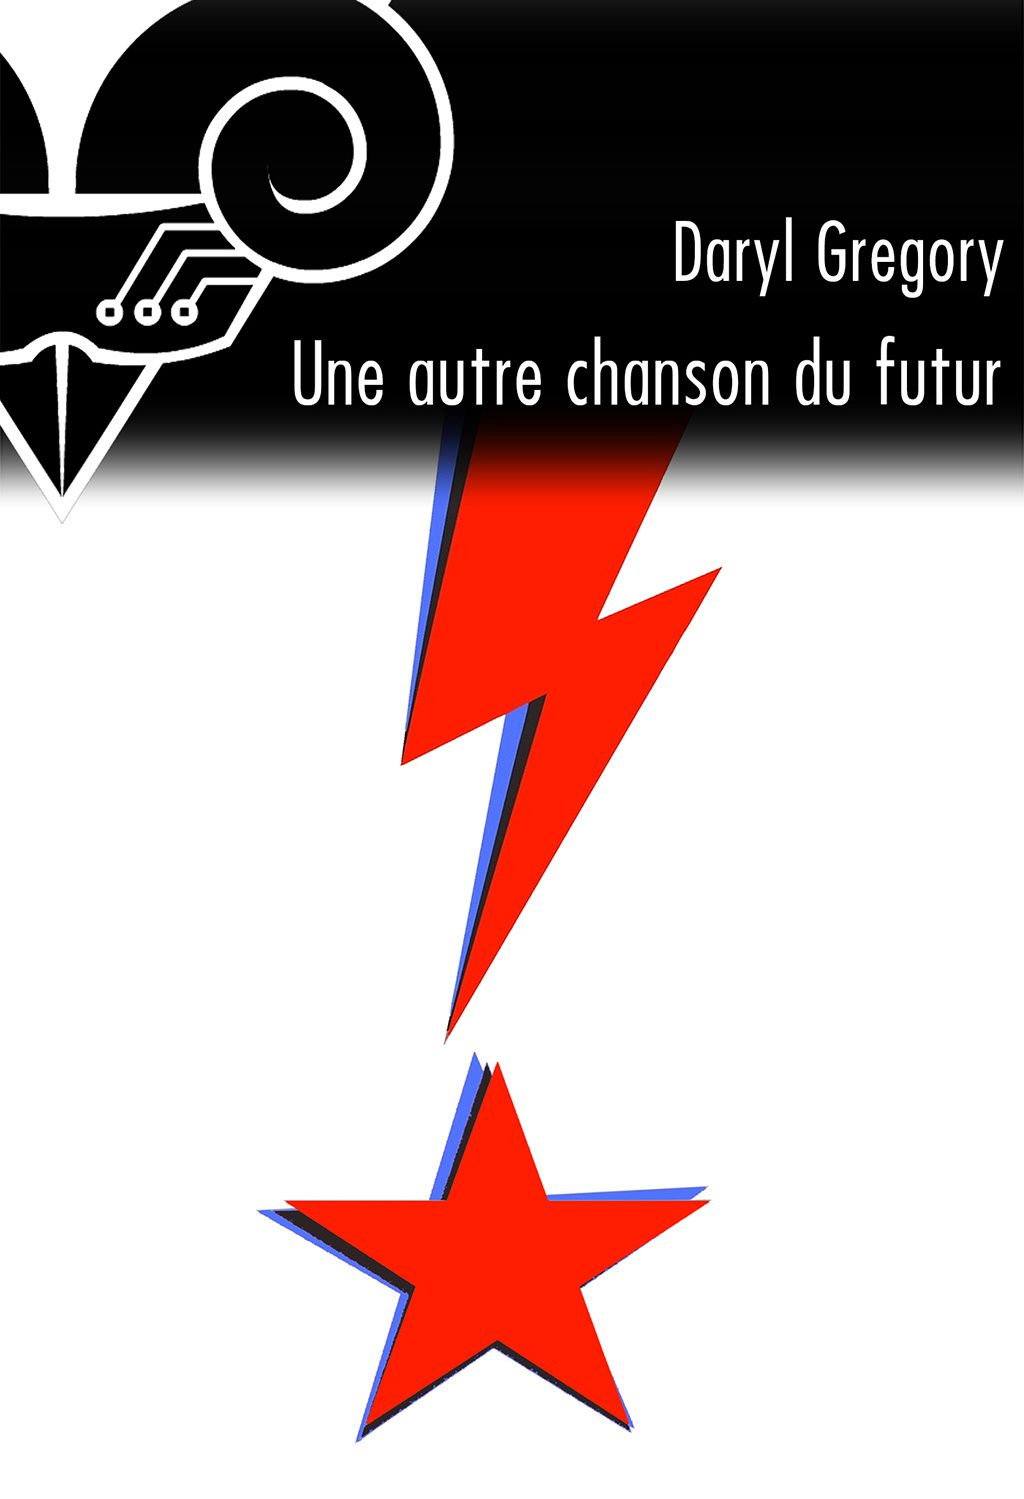 Une autre chanson du futur - Daryl GREGORY (Just Another Future Song, 2013), traduction de Erwann PERCHOC, Le Bélial', 2017, 33 pages